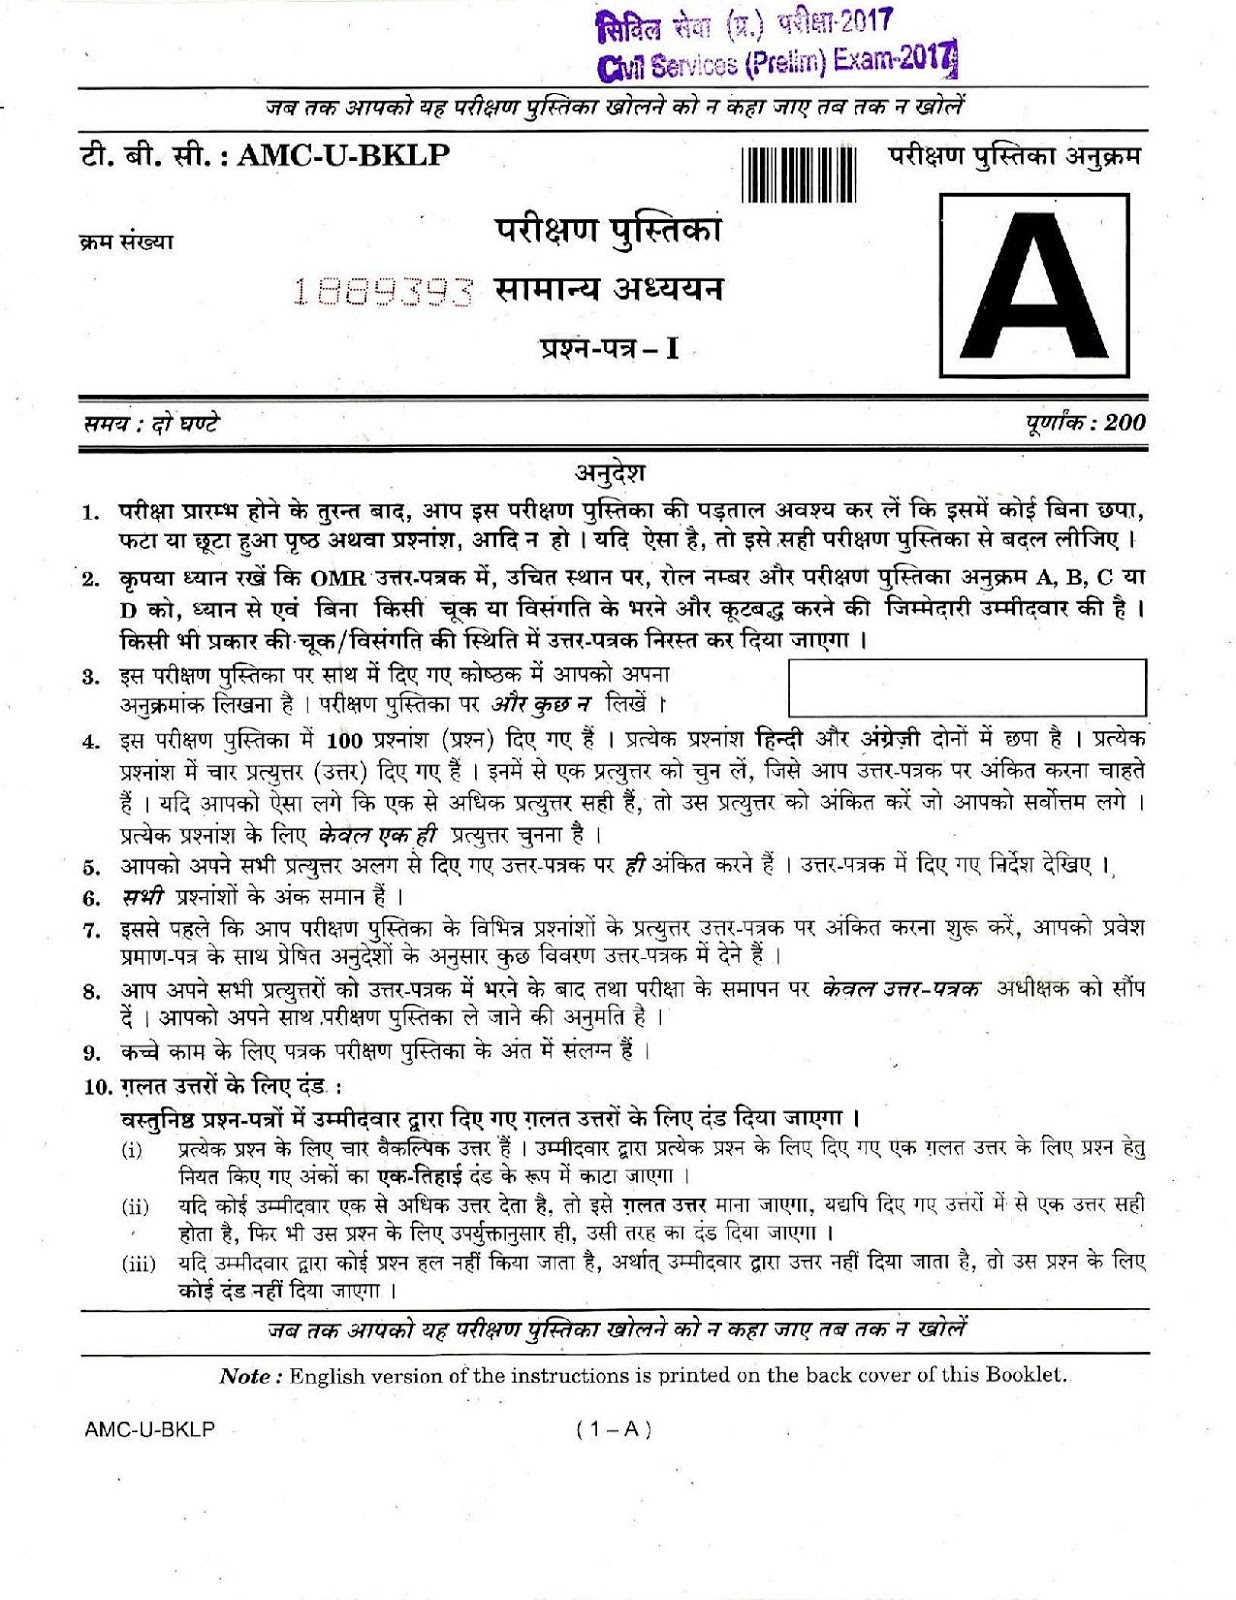 Civil Services (Preliminary) Examination 2017 : Question Papers : General  Studies Paper - I